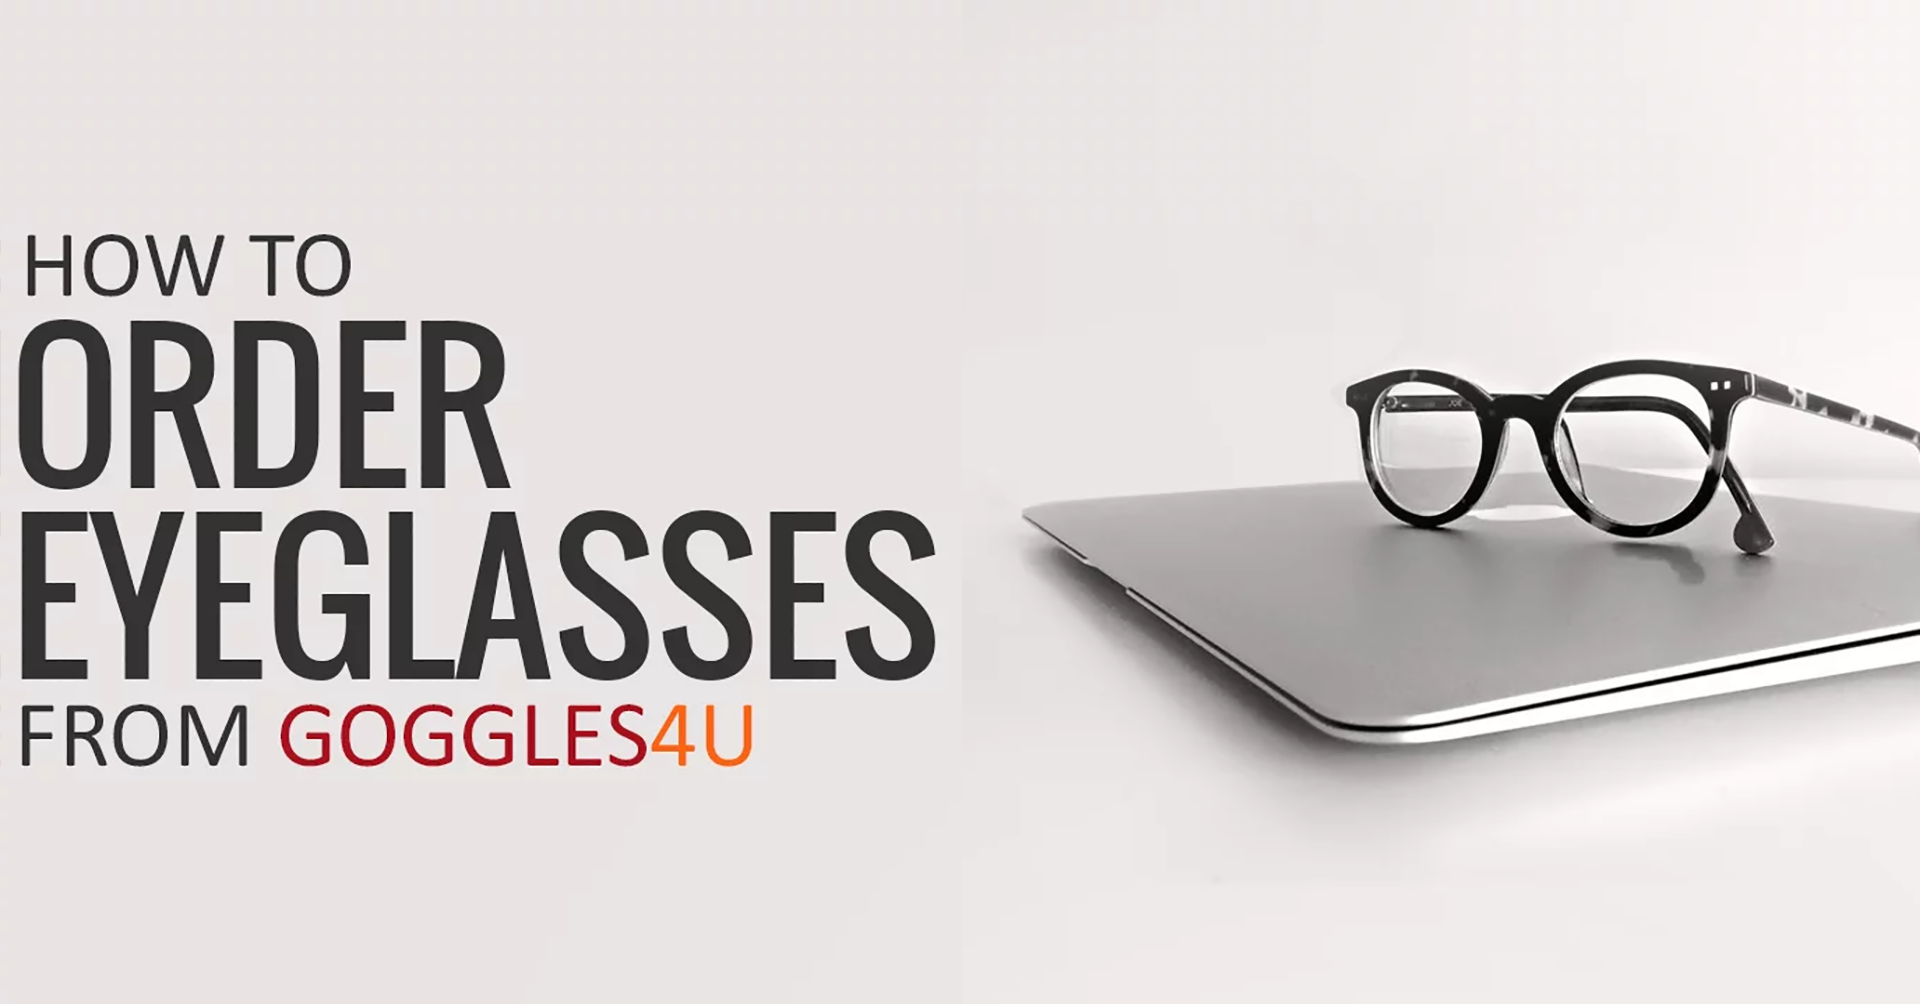 HOW TO ORDER YOUR EYEGLASSES FROM GOGGLES4U